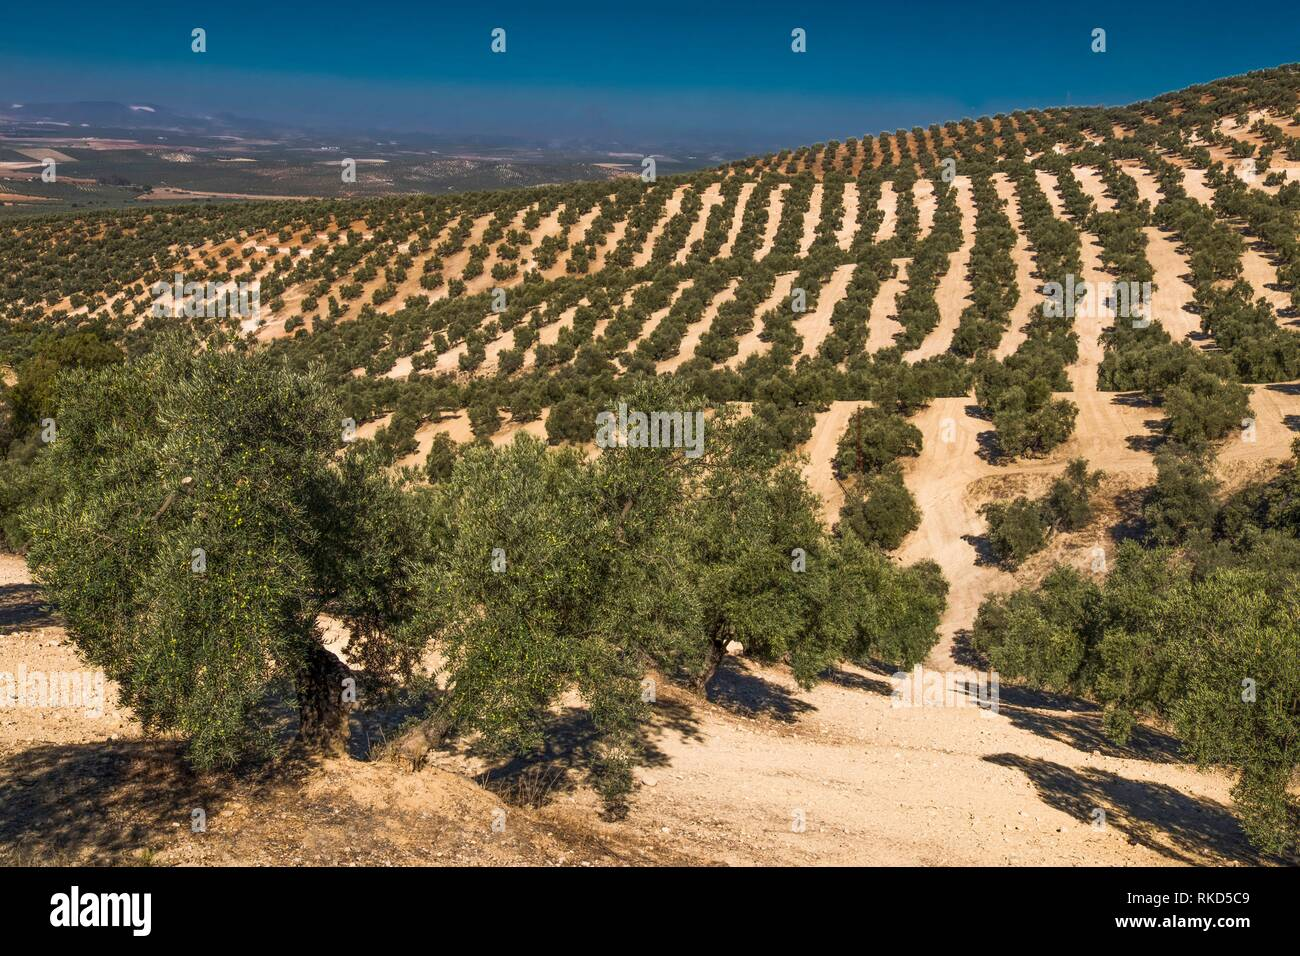 Spain, Andalusia, Malaga Province, Olive trees plantations by Antequera. - Stock Image